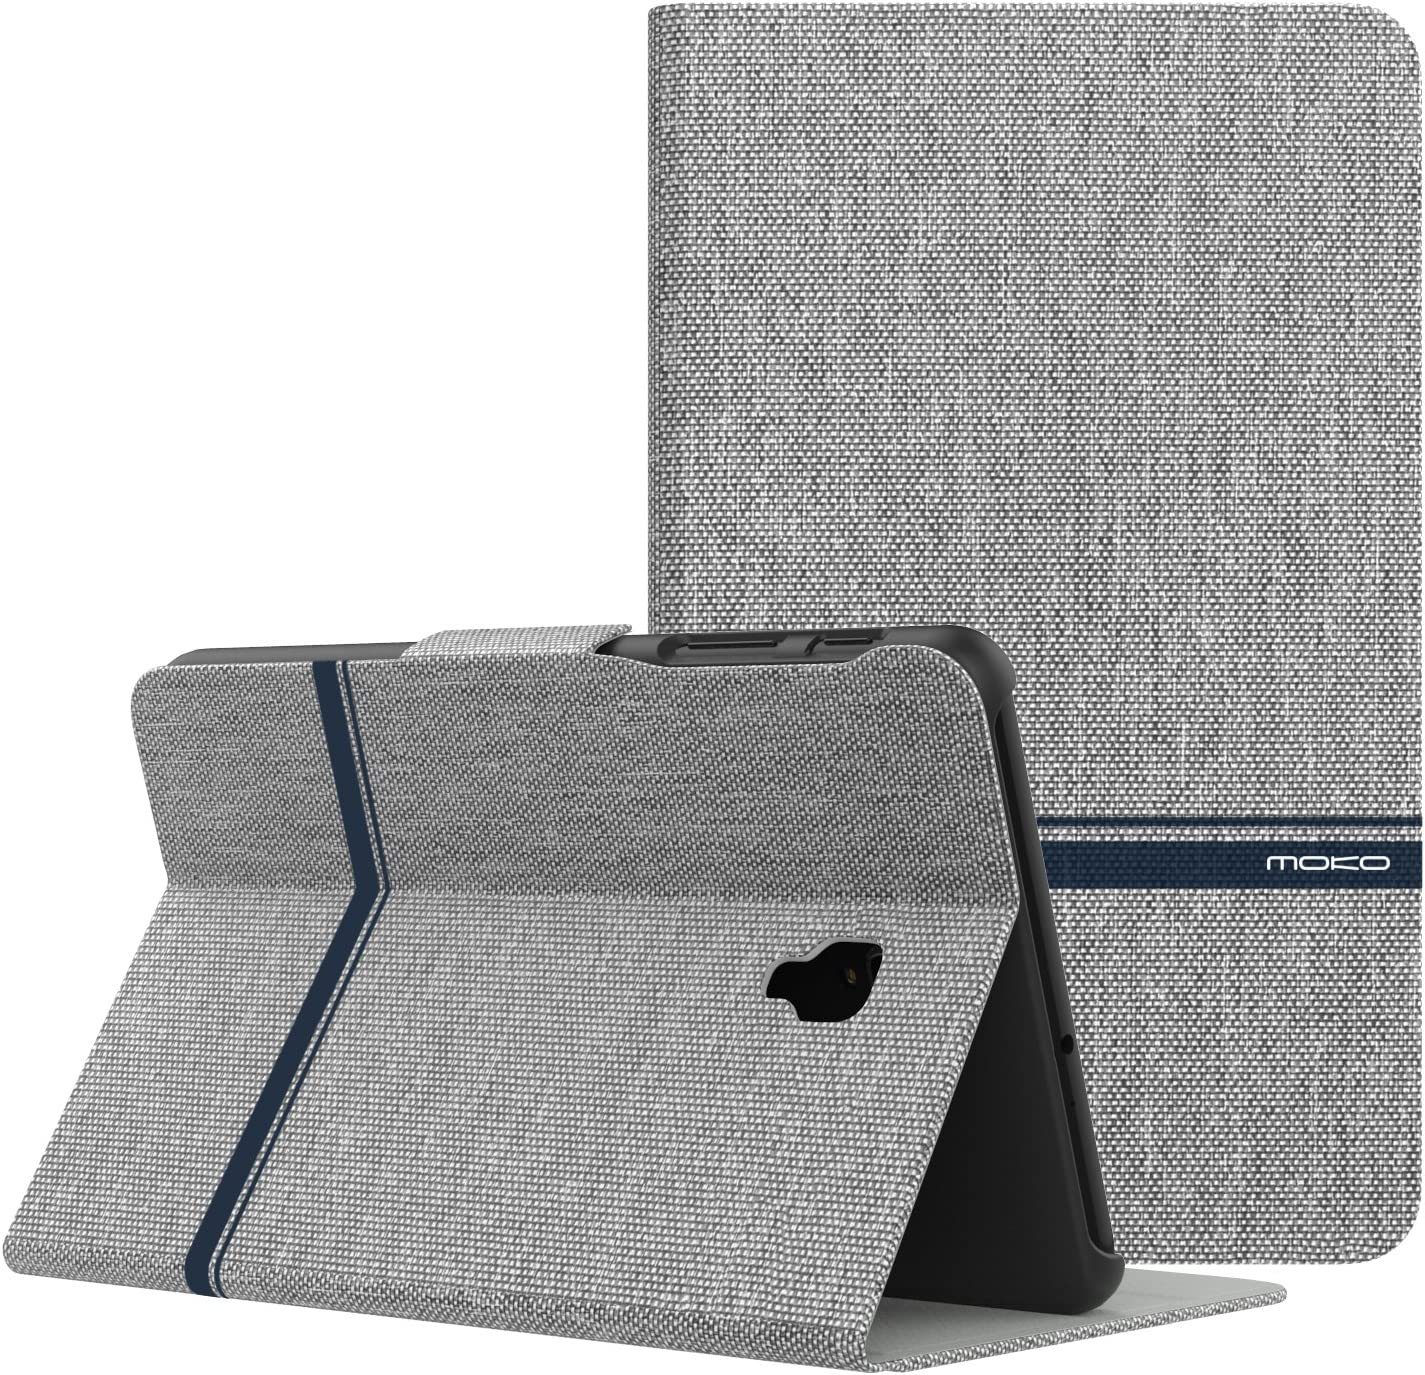 MoKo Samsung Galaxy Tab A 8.0 2017 Case - Lightweight Stand Scratch Proof Folio Cover Case Protector Holder for Galaxy Tab A 8.0 (SM-T380/T385) 2017 Release(NOT FIT 2015 Tab A 8.0), Light Gray